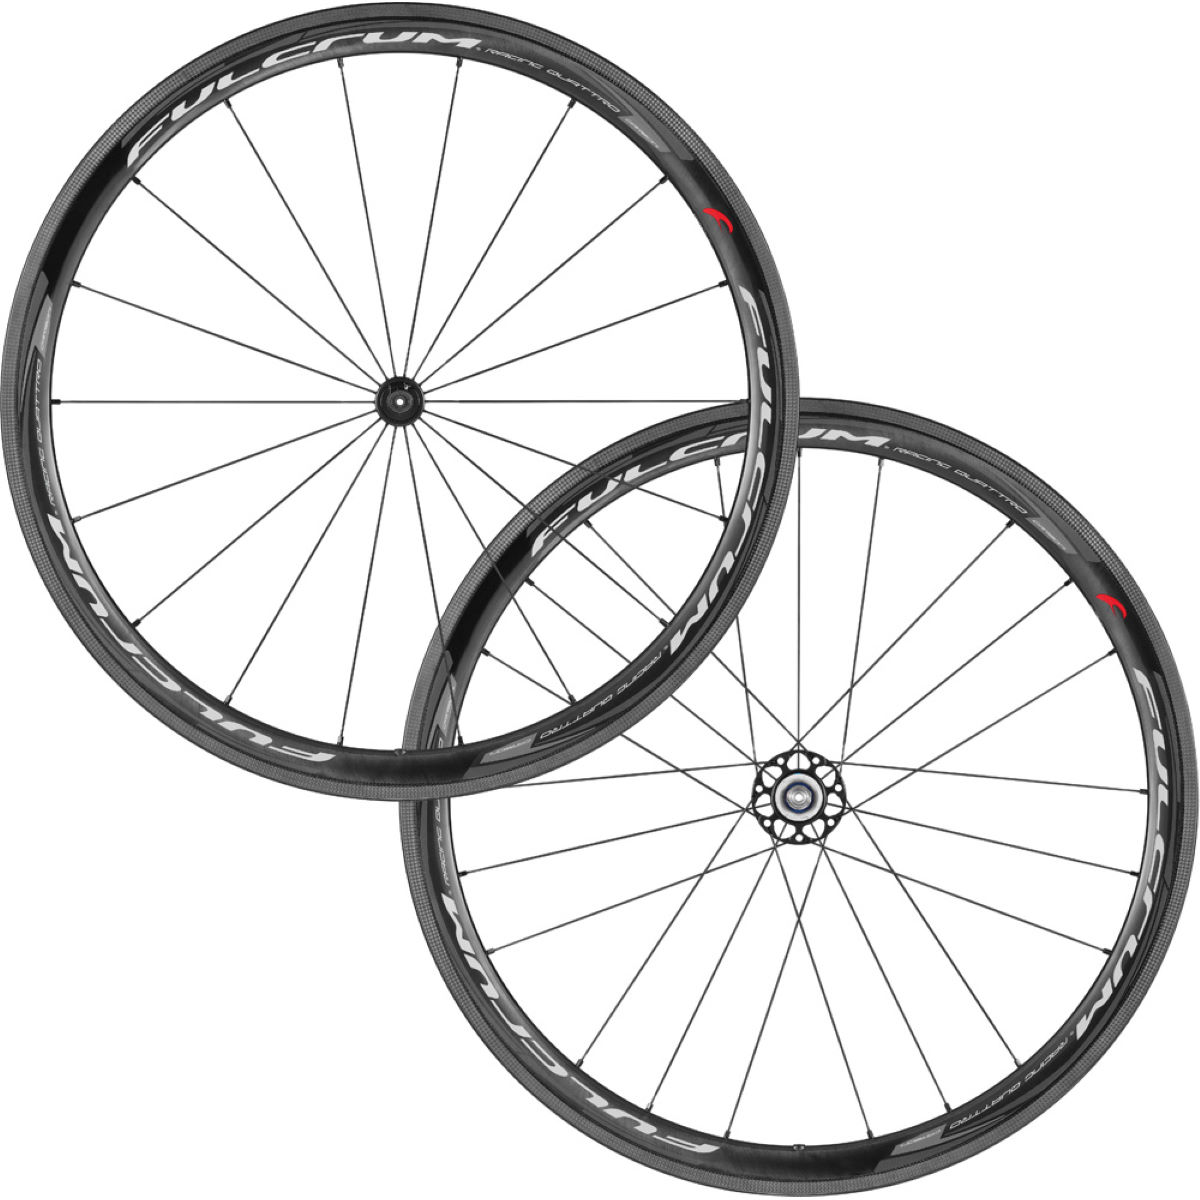 Wheel set Fulcrum Racing Quattro Carbon - Competition wheels